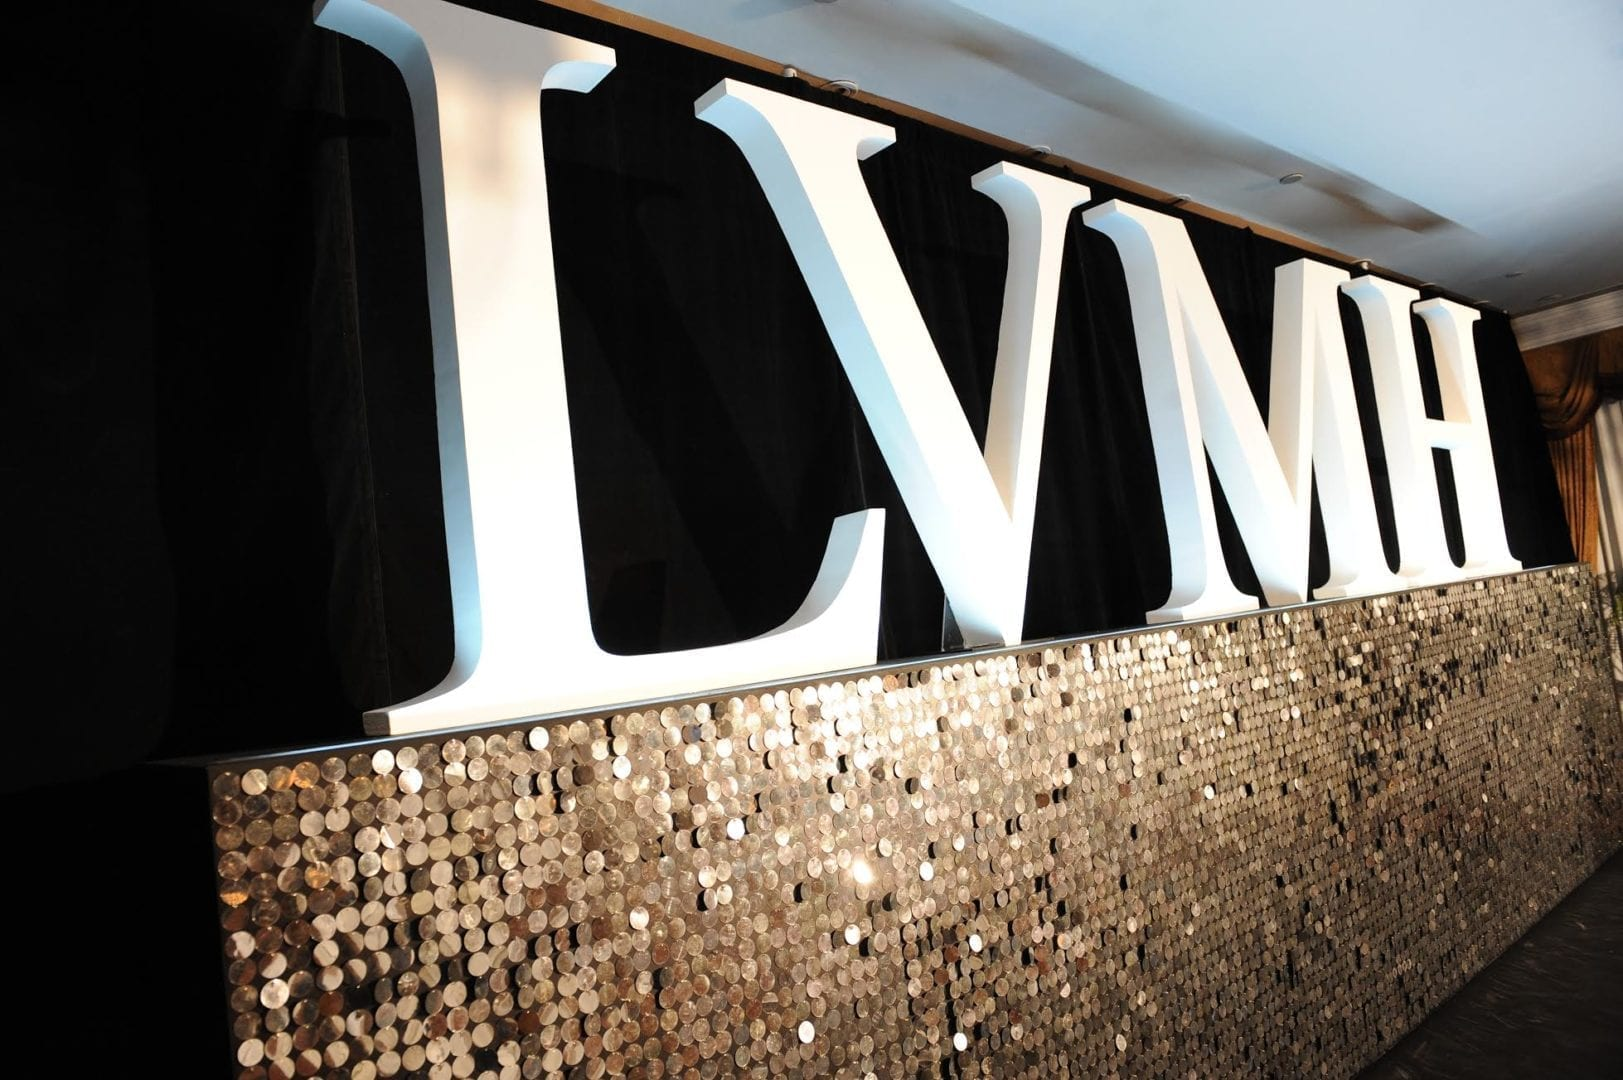 lvmh strategy essay The strategy of licensing is a contractual agreement where company a (the licensor) makes a legally protected asset available to company b (the licensee) in exchange.